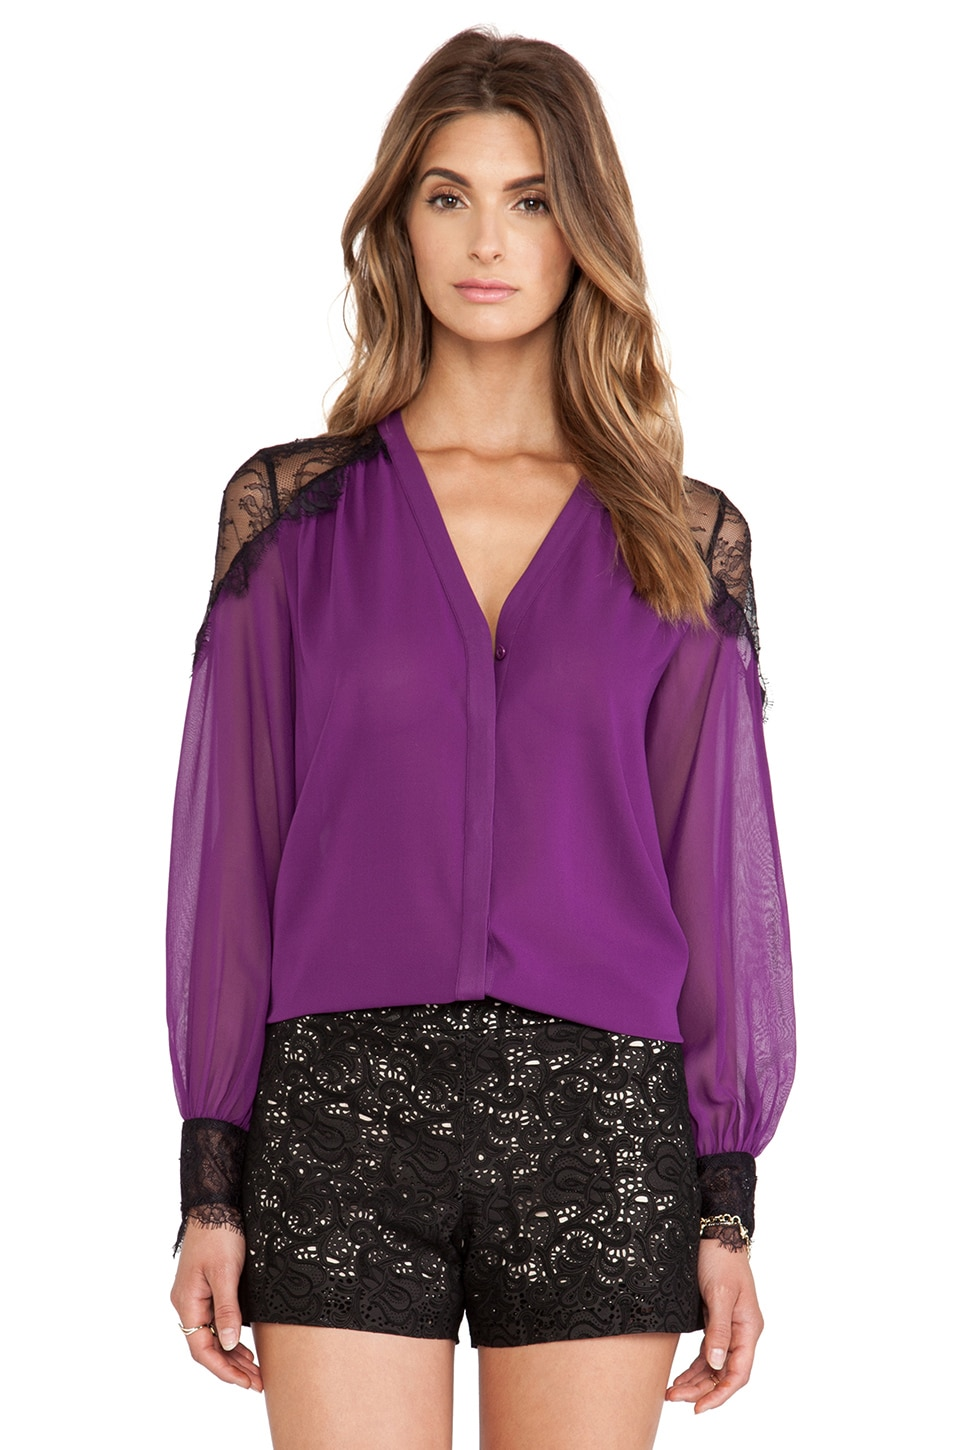 Alice + Olivia Sofia Lace Shoulder Blouse in Electric Plum